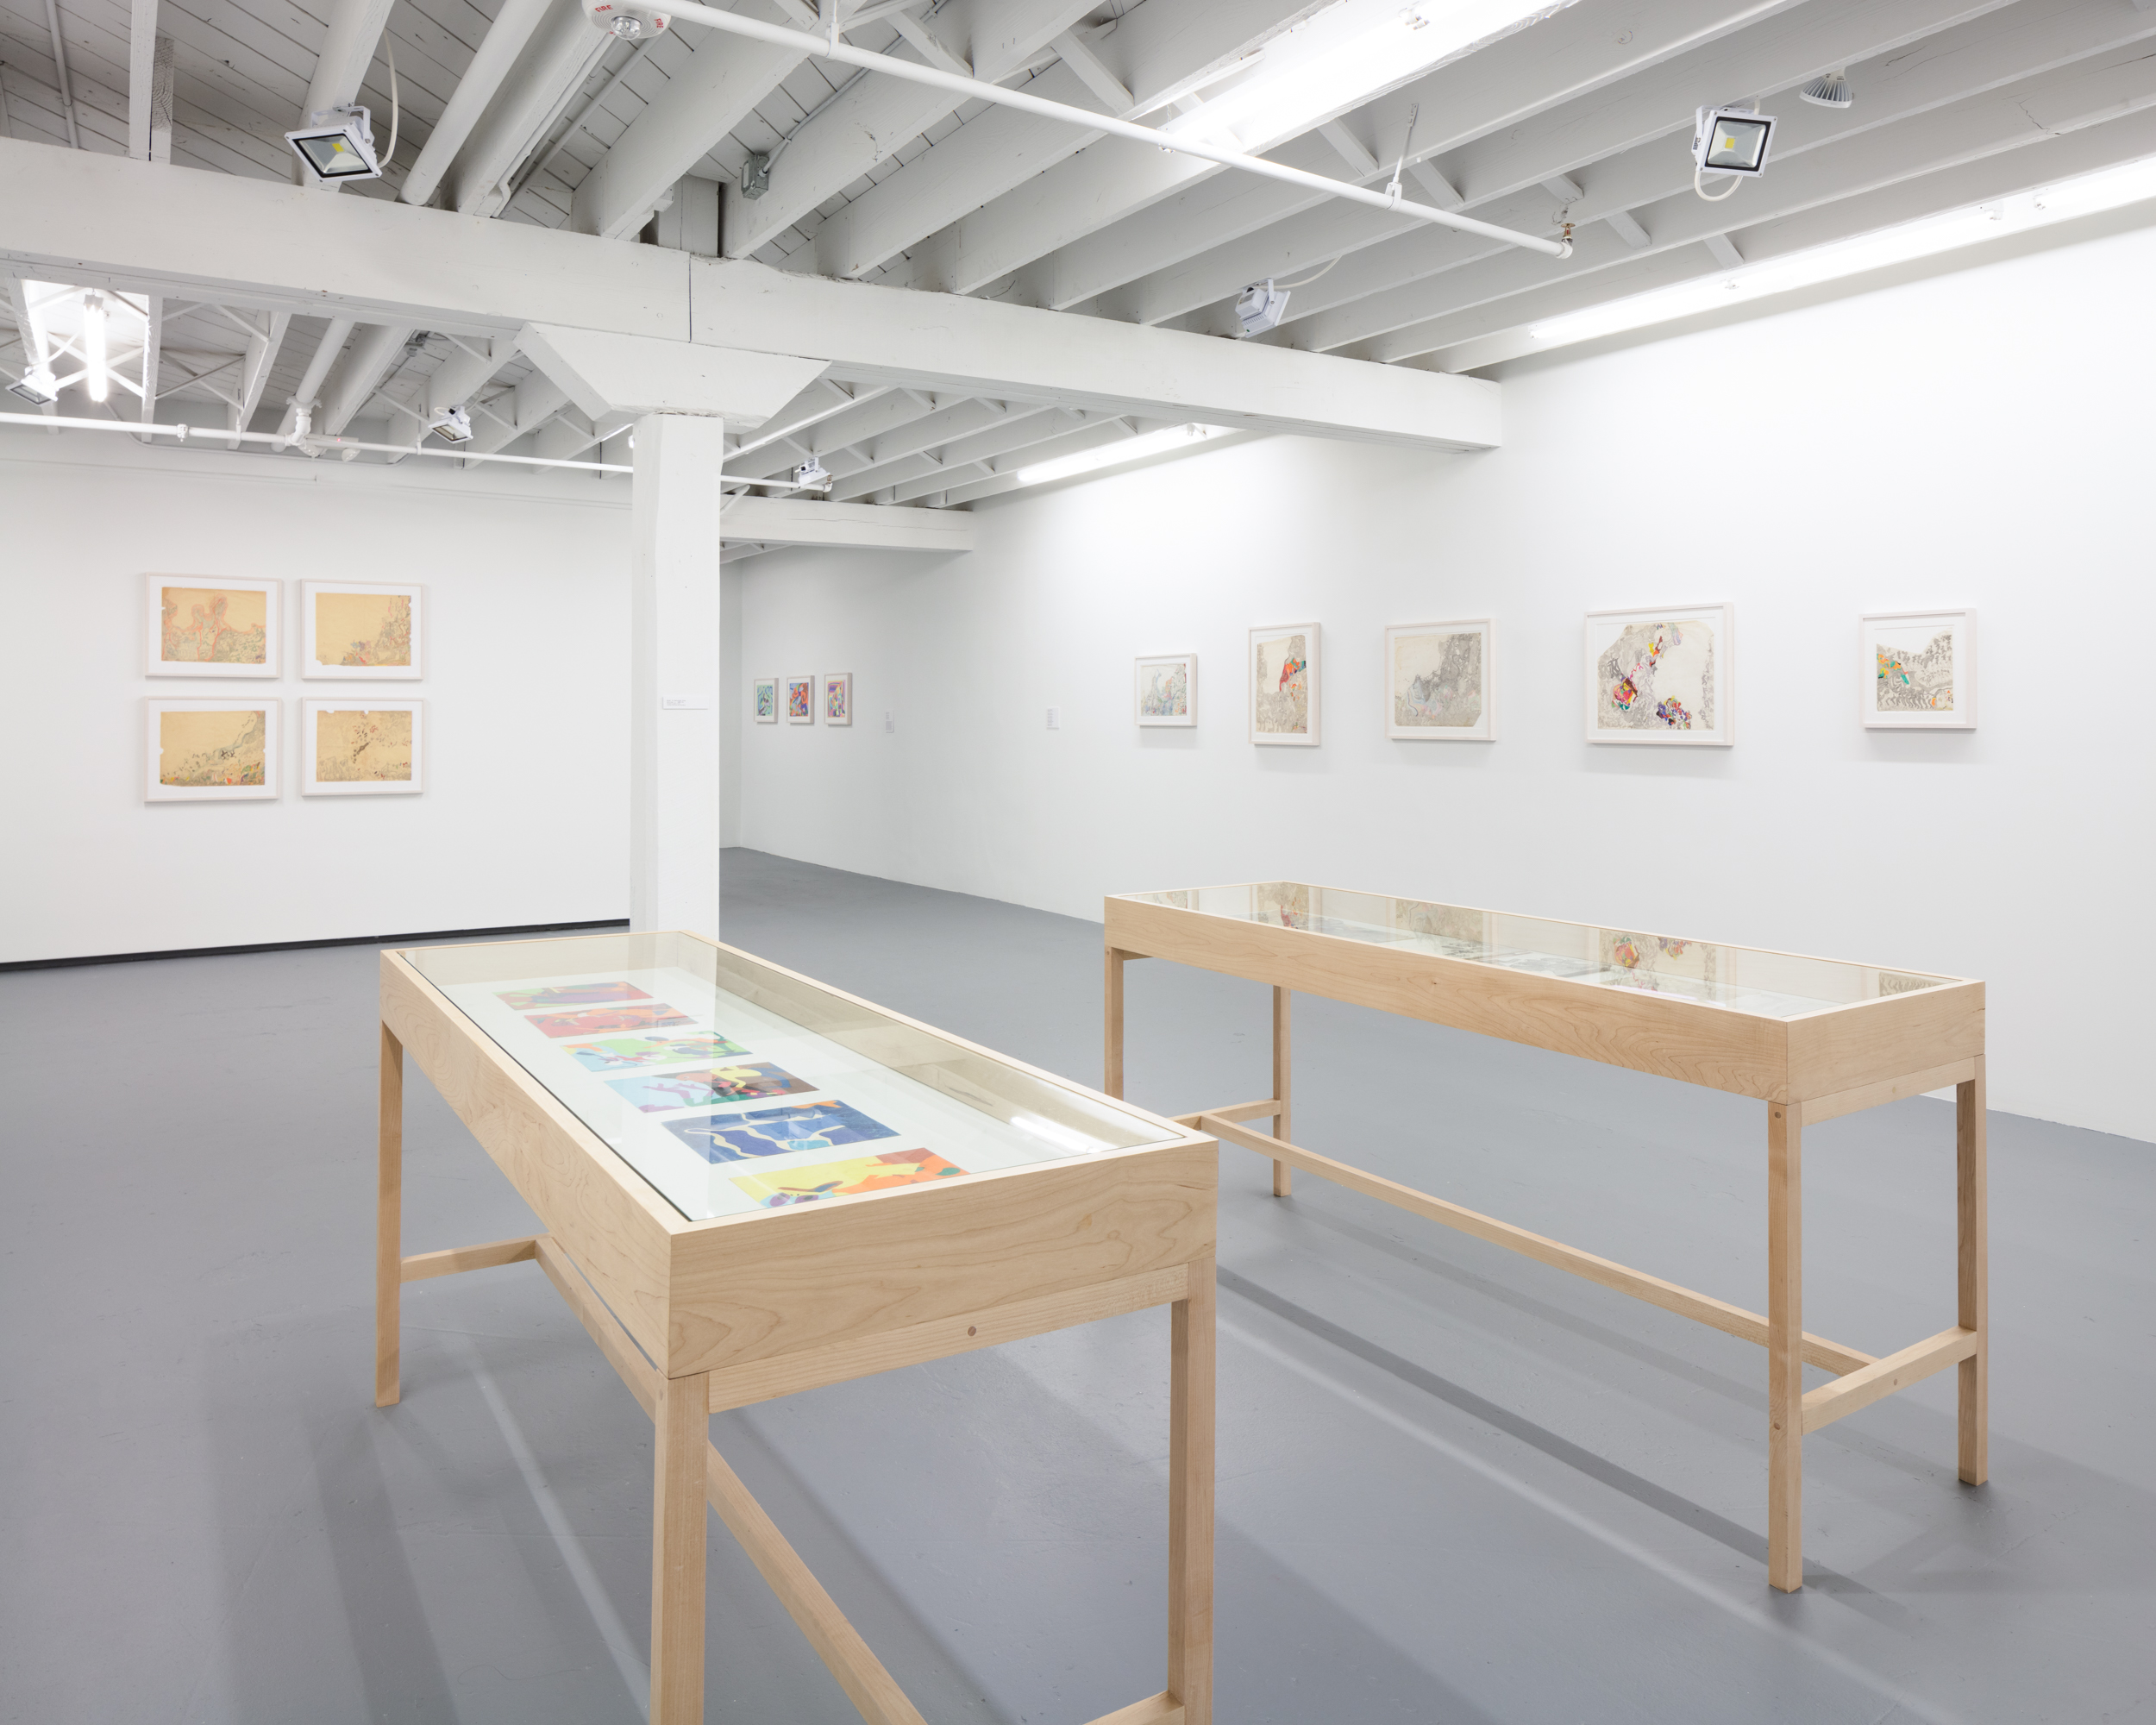 Installation view of Susan Te Kahurangi King at Institute of Contemporary Art, Miami